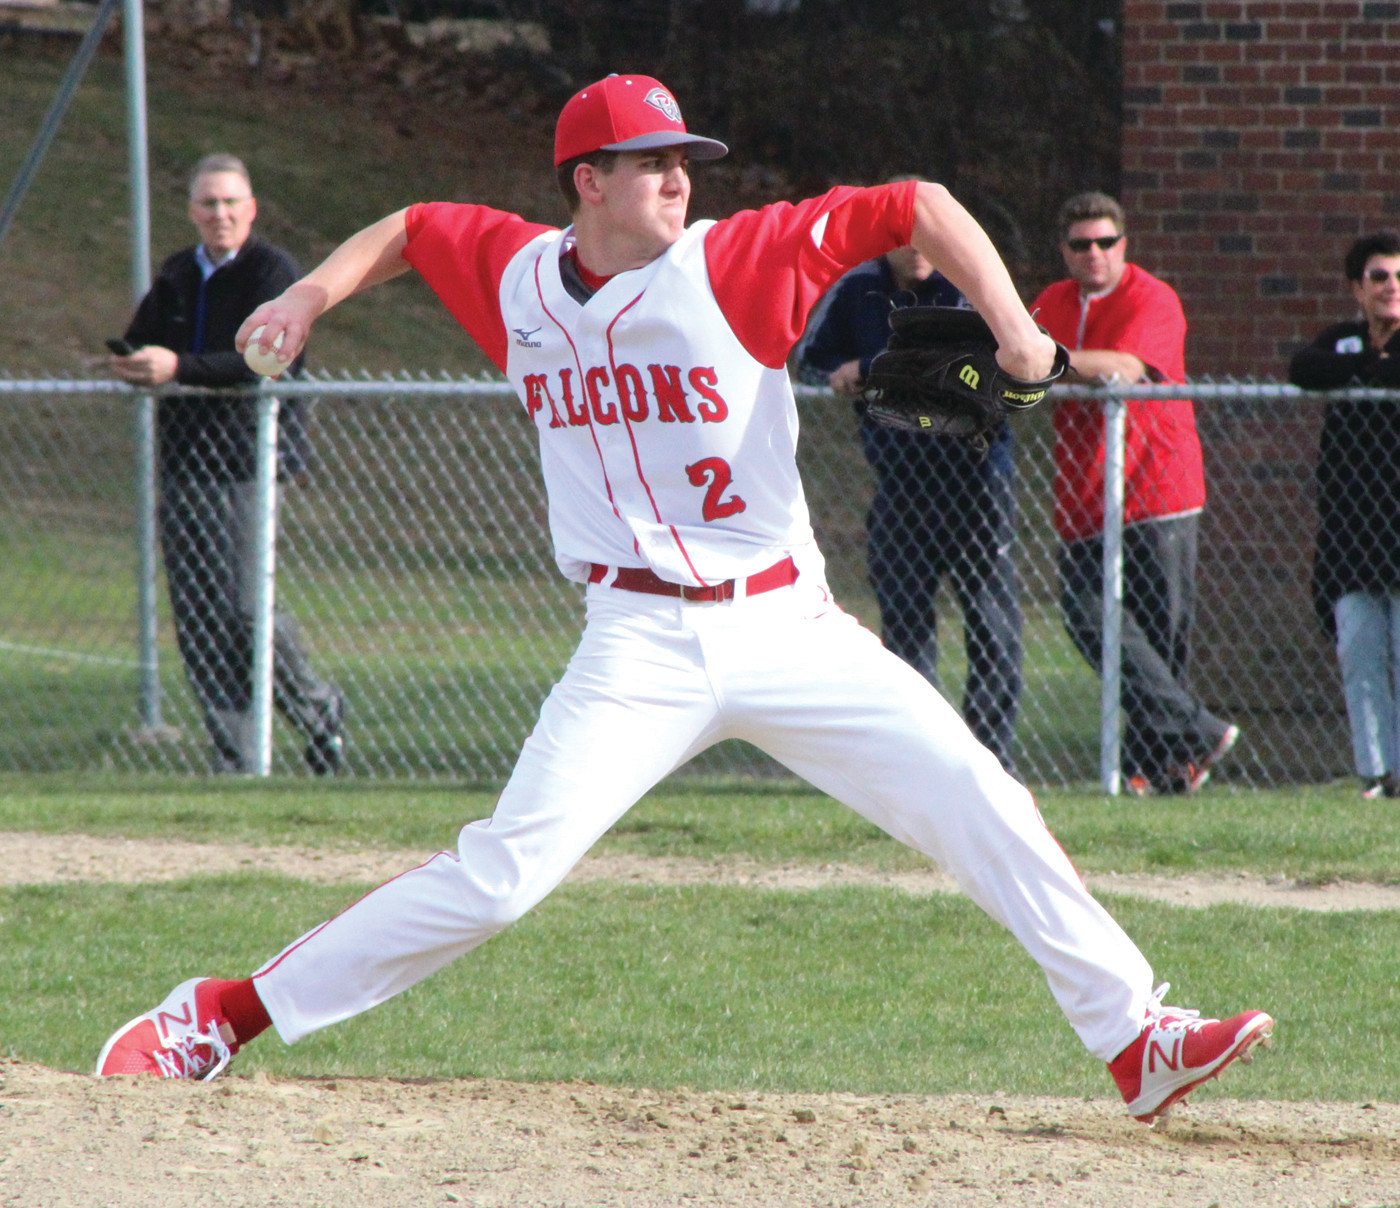 STRONG START: Brett Traficante yielded just two runs over five innings against Hendricken.